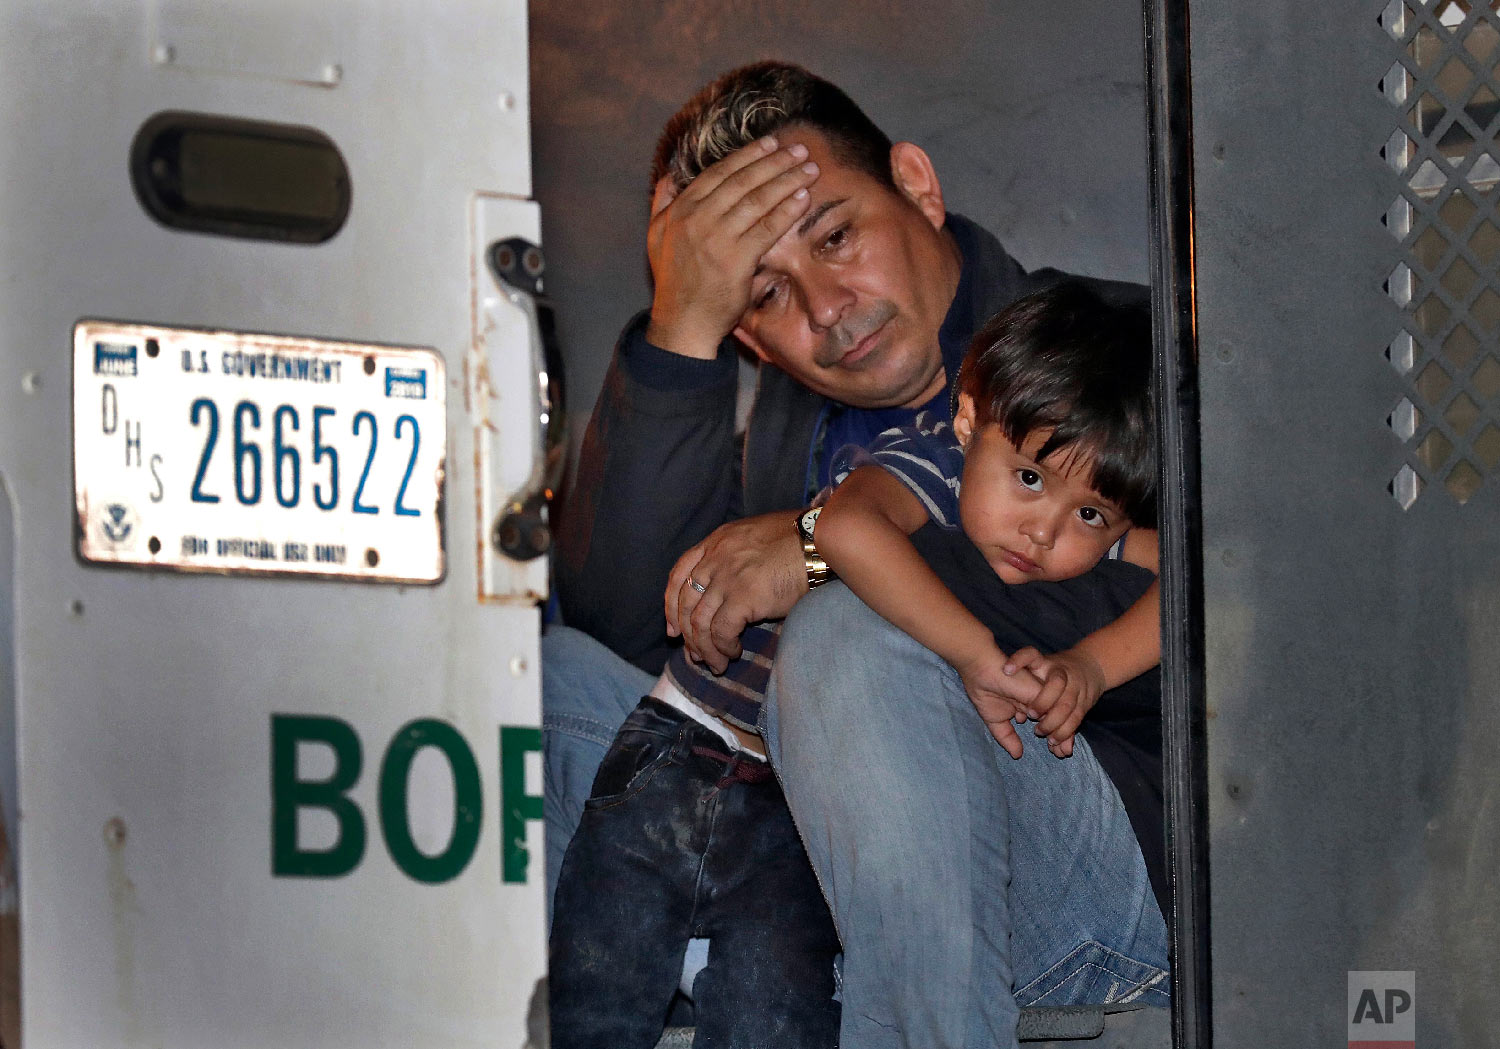 A father and his 3-year-old son are detained in the back of a U.S. Customs and Border Patrol vehicle on July 18, 2018, in San Luis, Ariz. The boy, his father and two siblings were arrested by a U.S. Border Patrol agent who spotted them crossing a canal along the the international border. (AP Photo/Matt York)